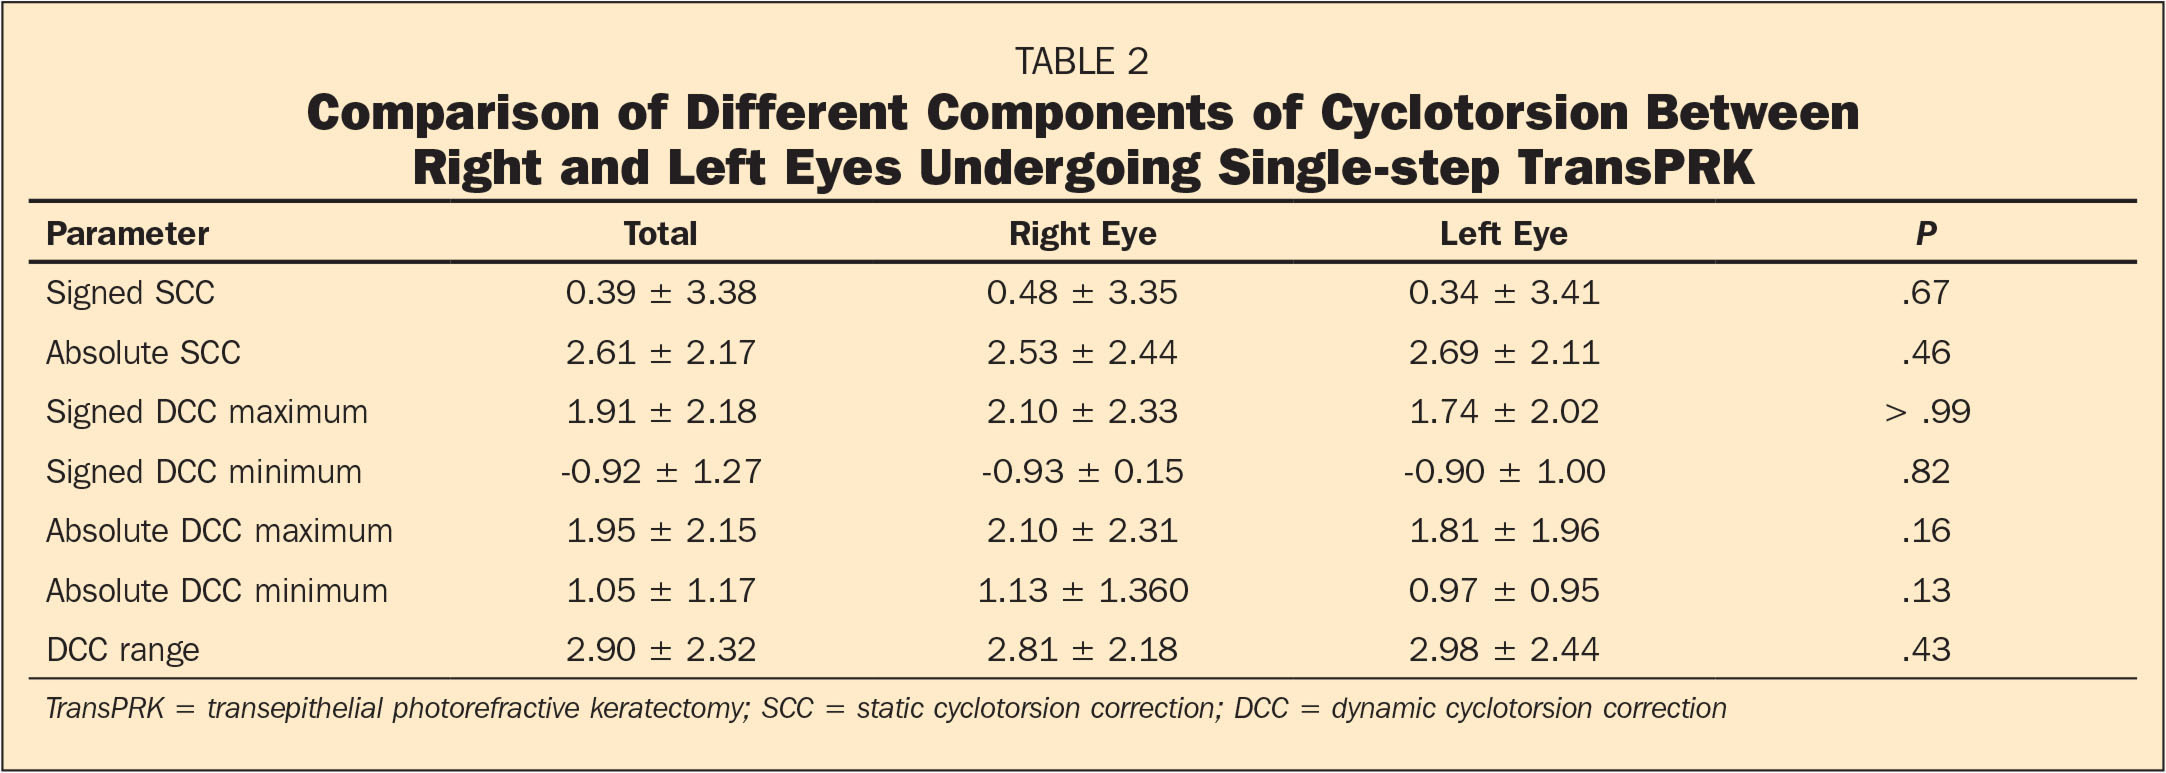 Comparison of Different Components of Cyclotorsion Between Right and Left Eyes Undergoing Single-step TransPRK